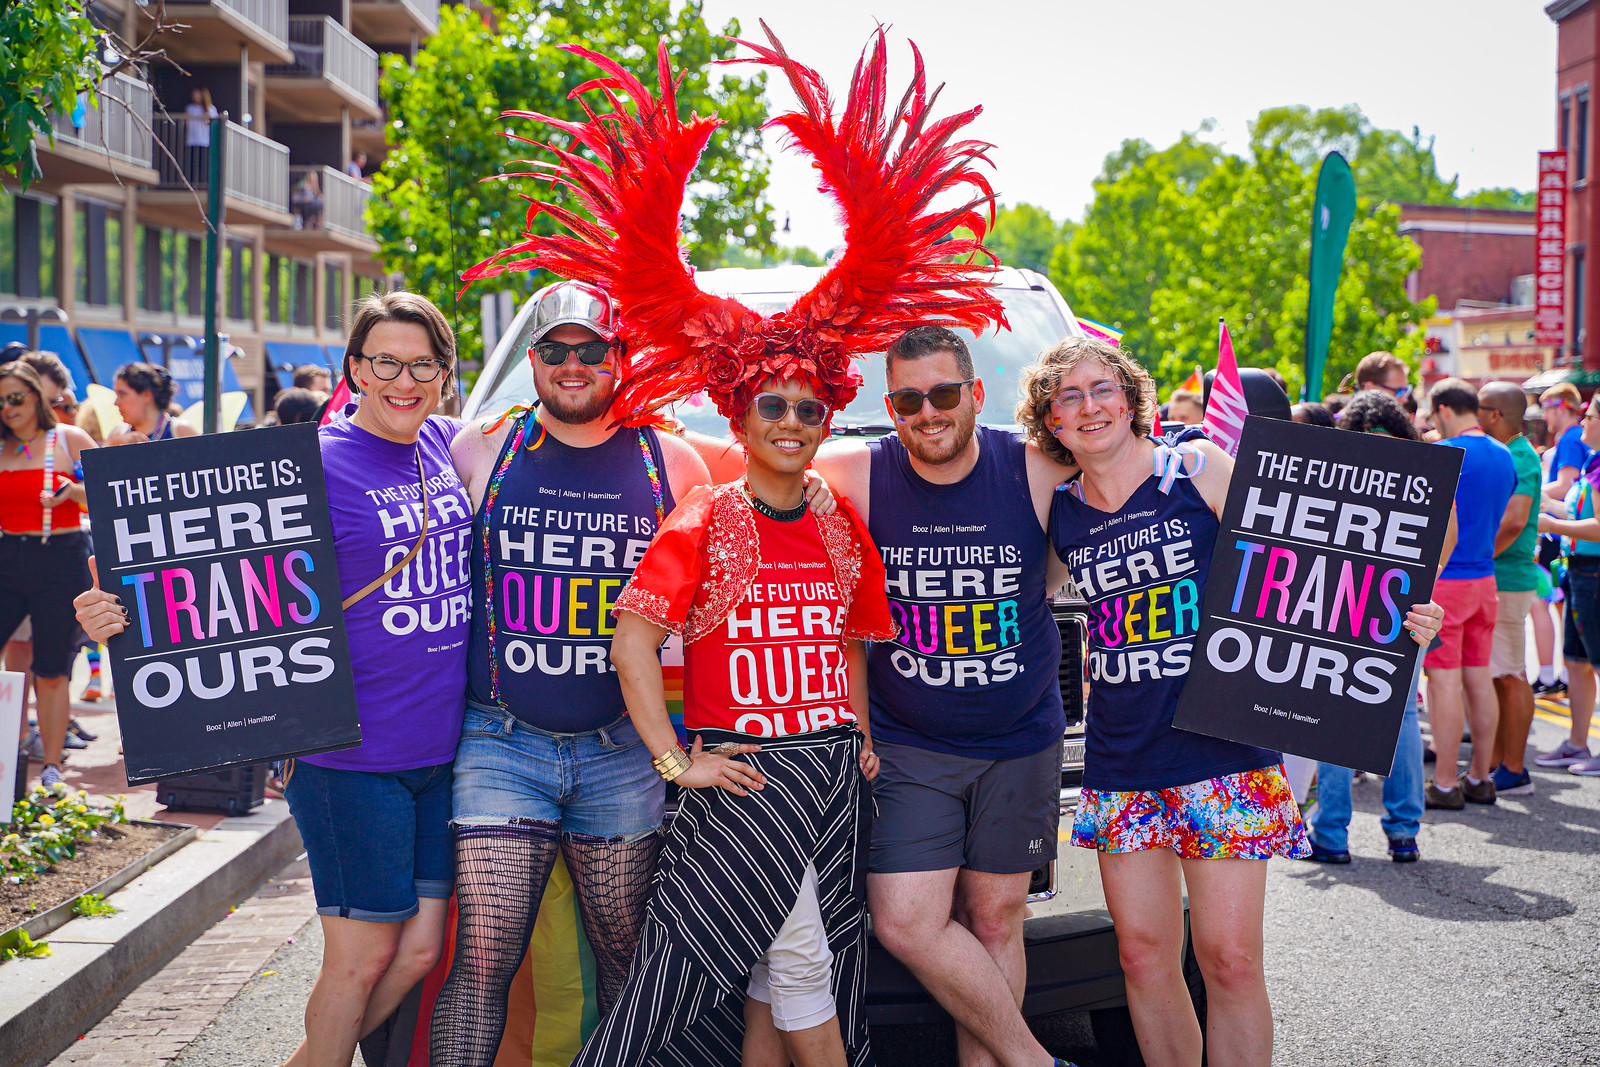 2019.06.08 Capital Pride Parade, Washington, DC USA 1590014